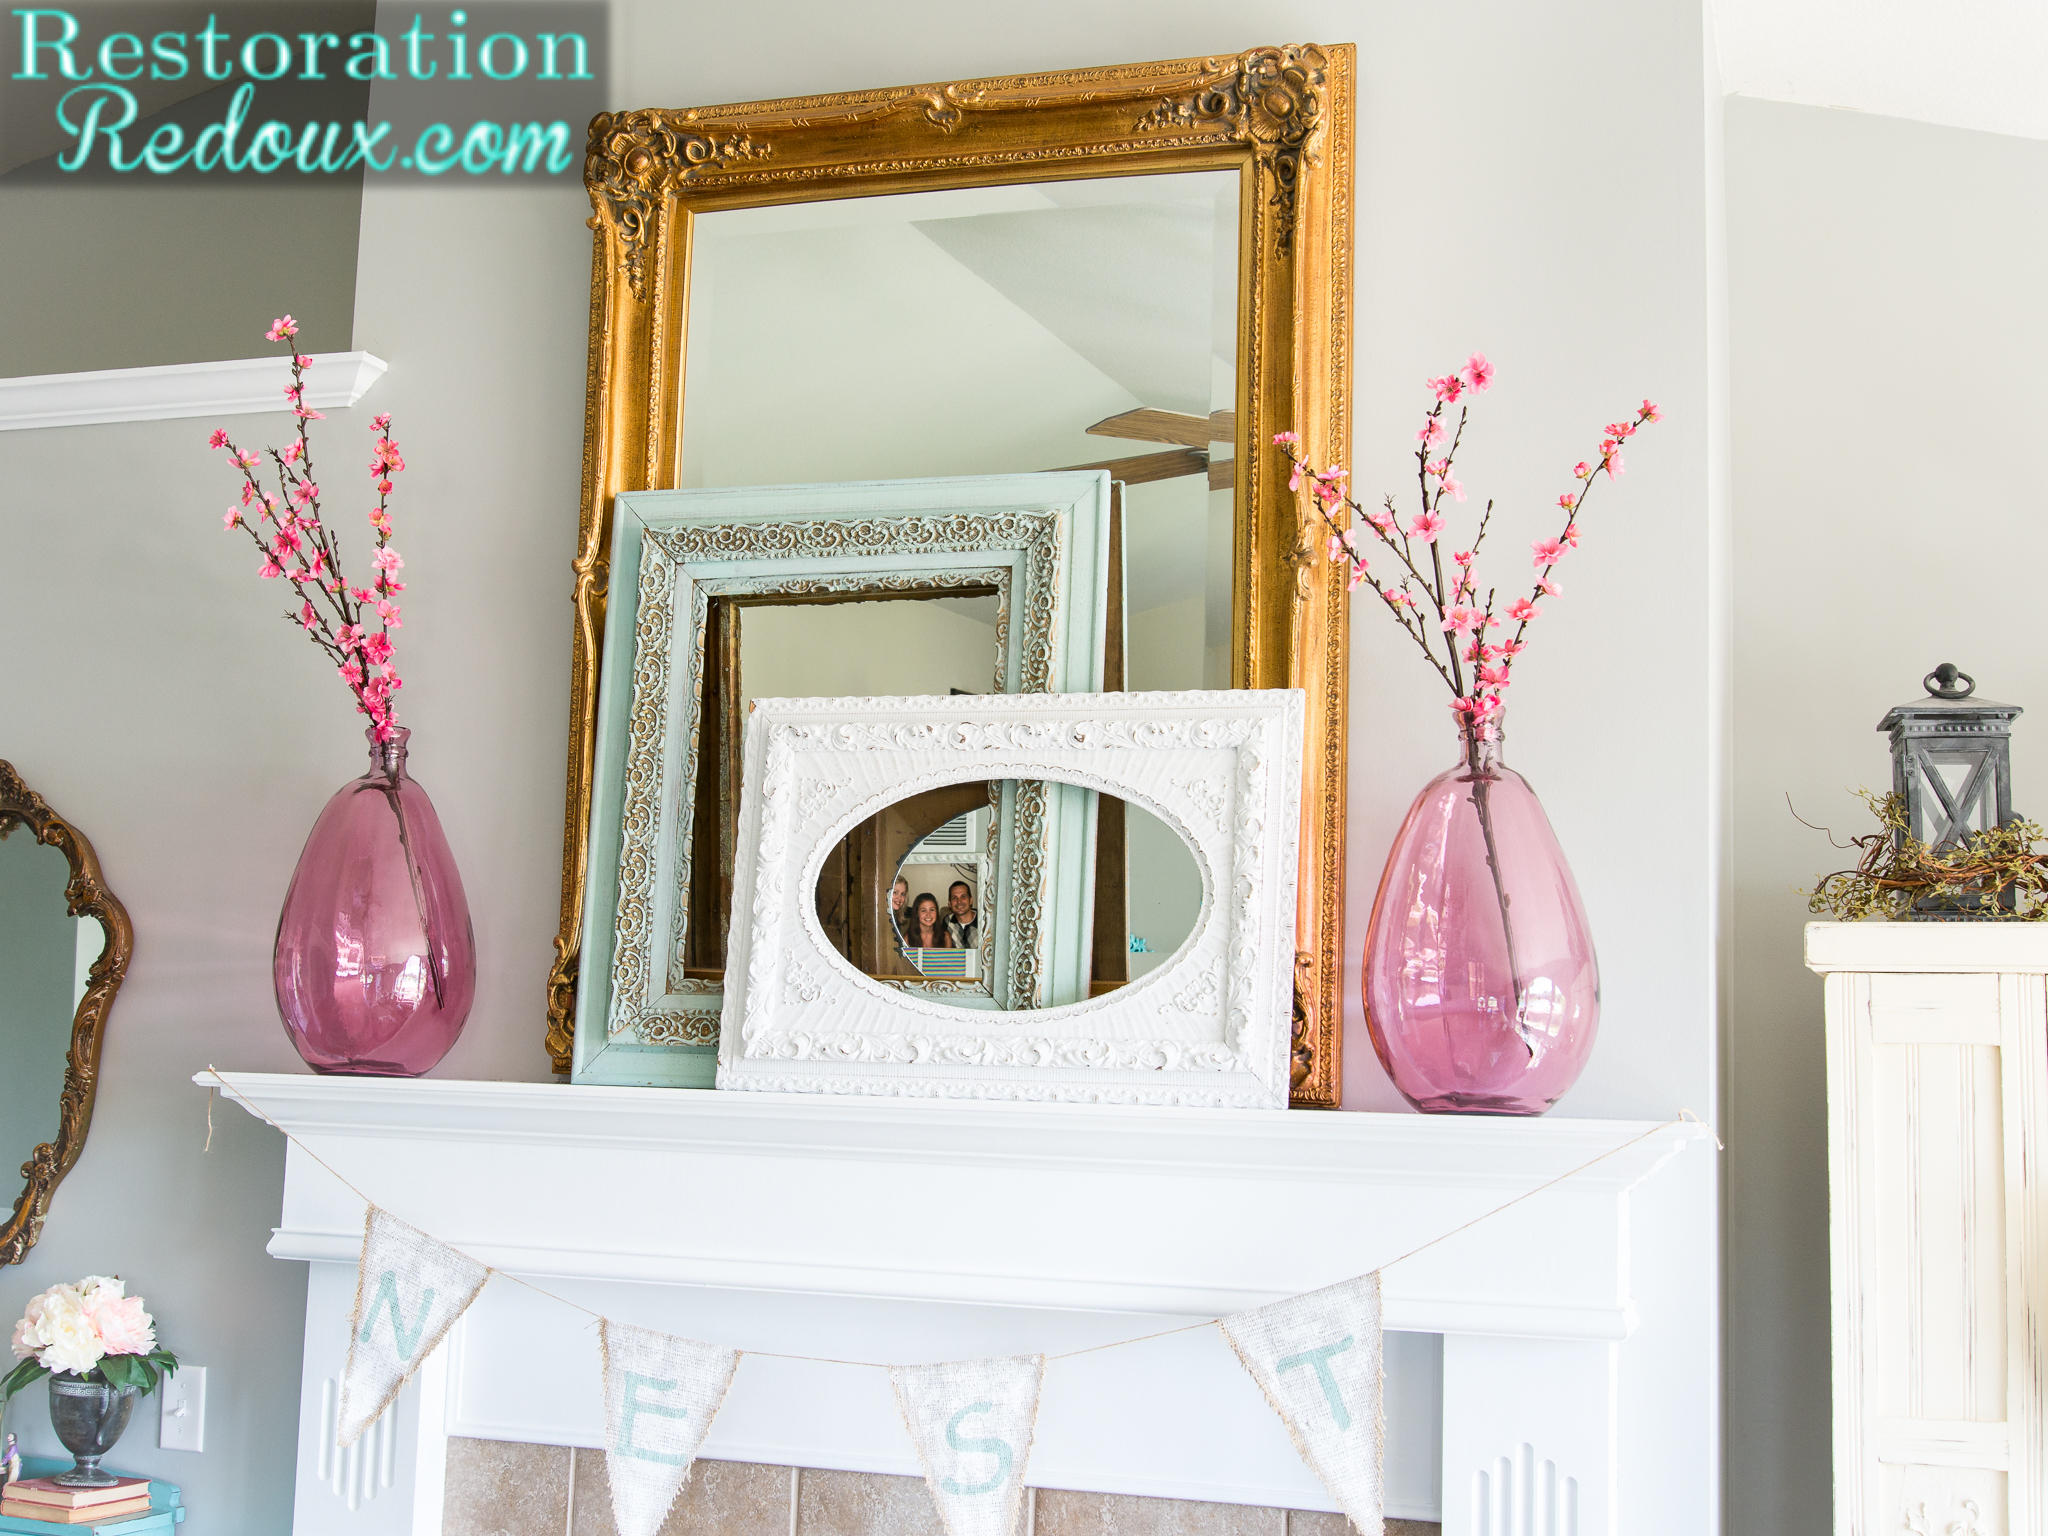 Decorating With Thrifty And Vintage Finds Daily Dose Of